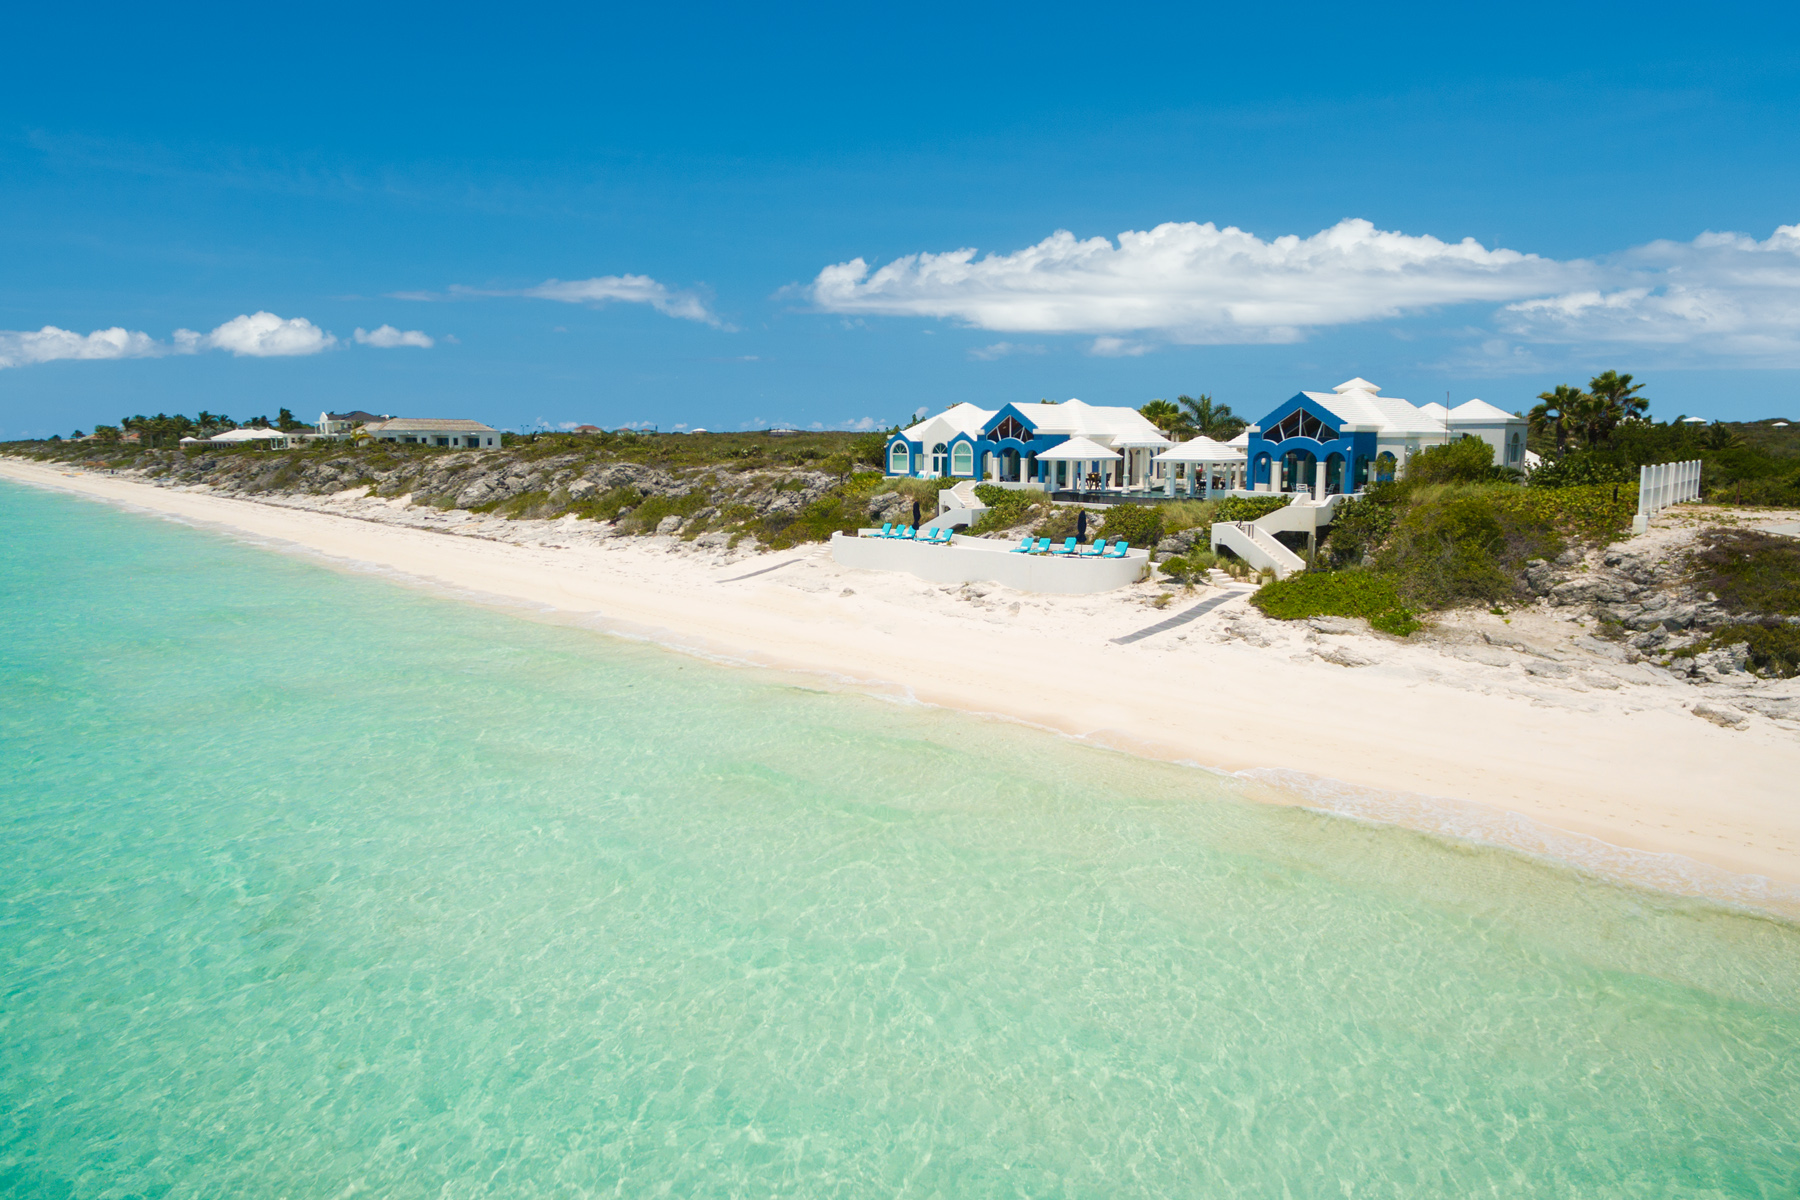 Tek Ailelik Ev için Satış at Mandalay Beachfront Long Bay, Providenciales, TCI Turks Ve Caicos Adalari